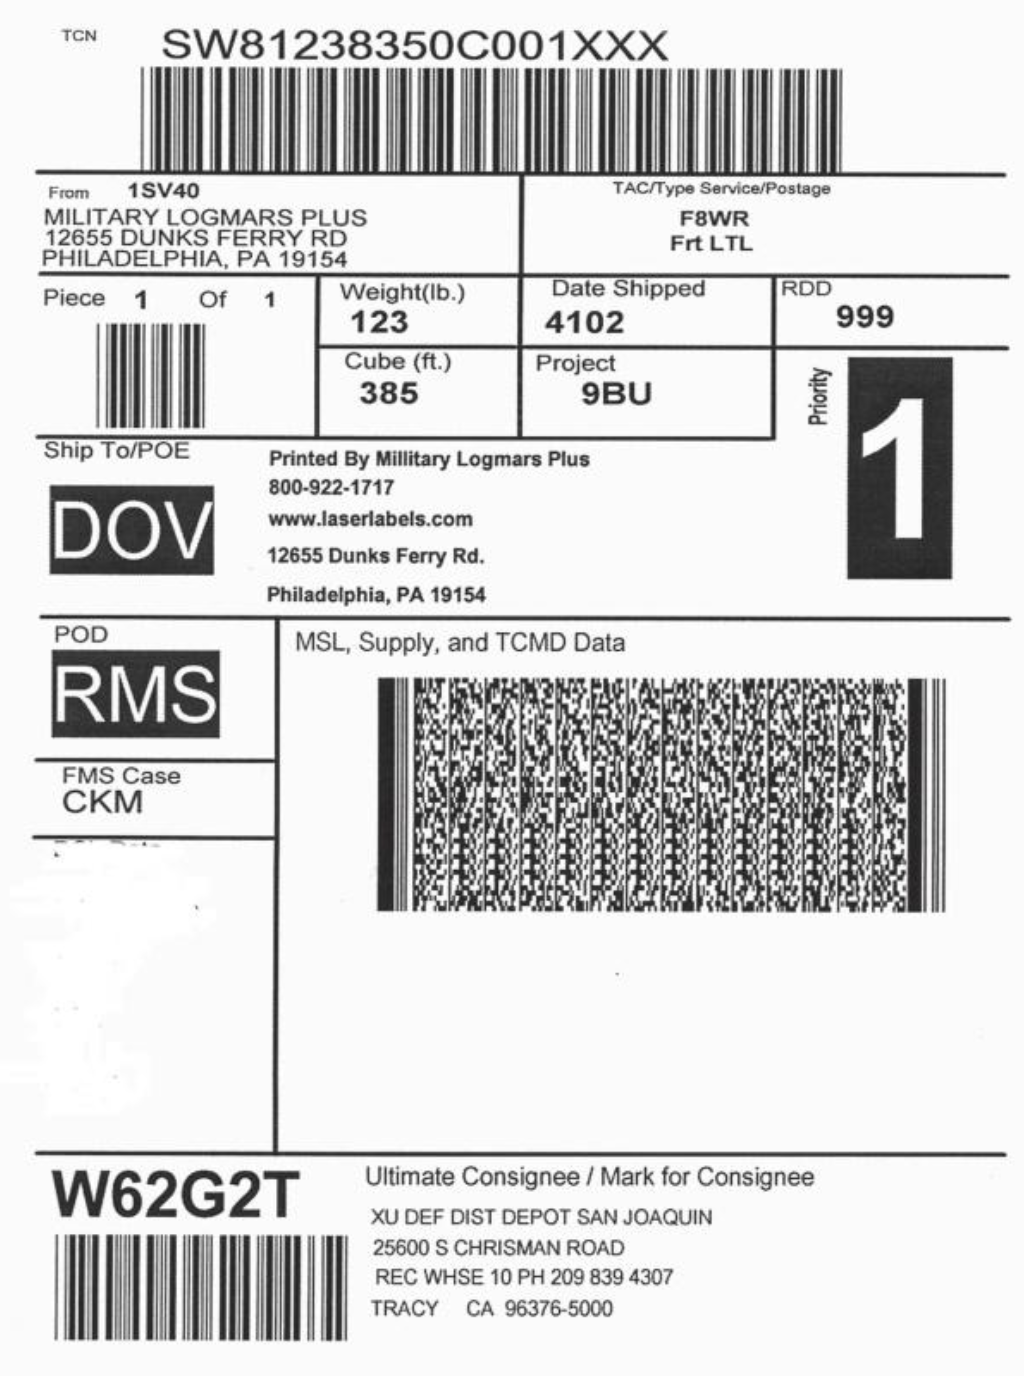 MSL military shipping label